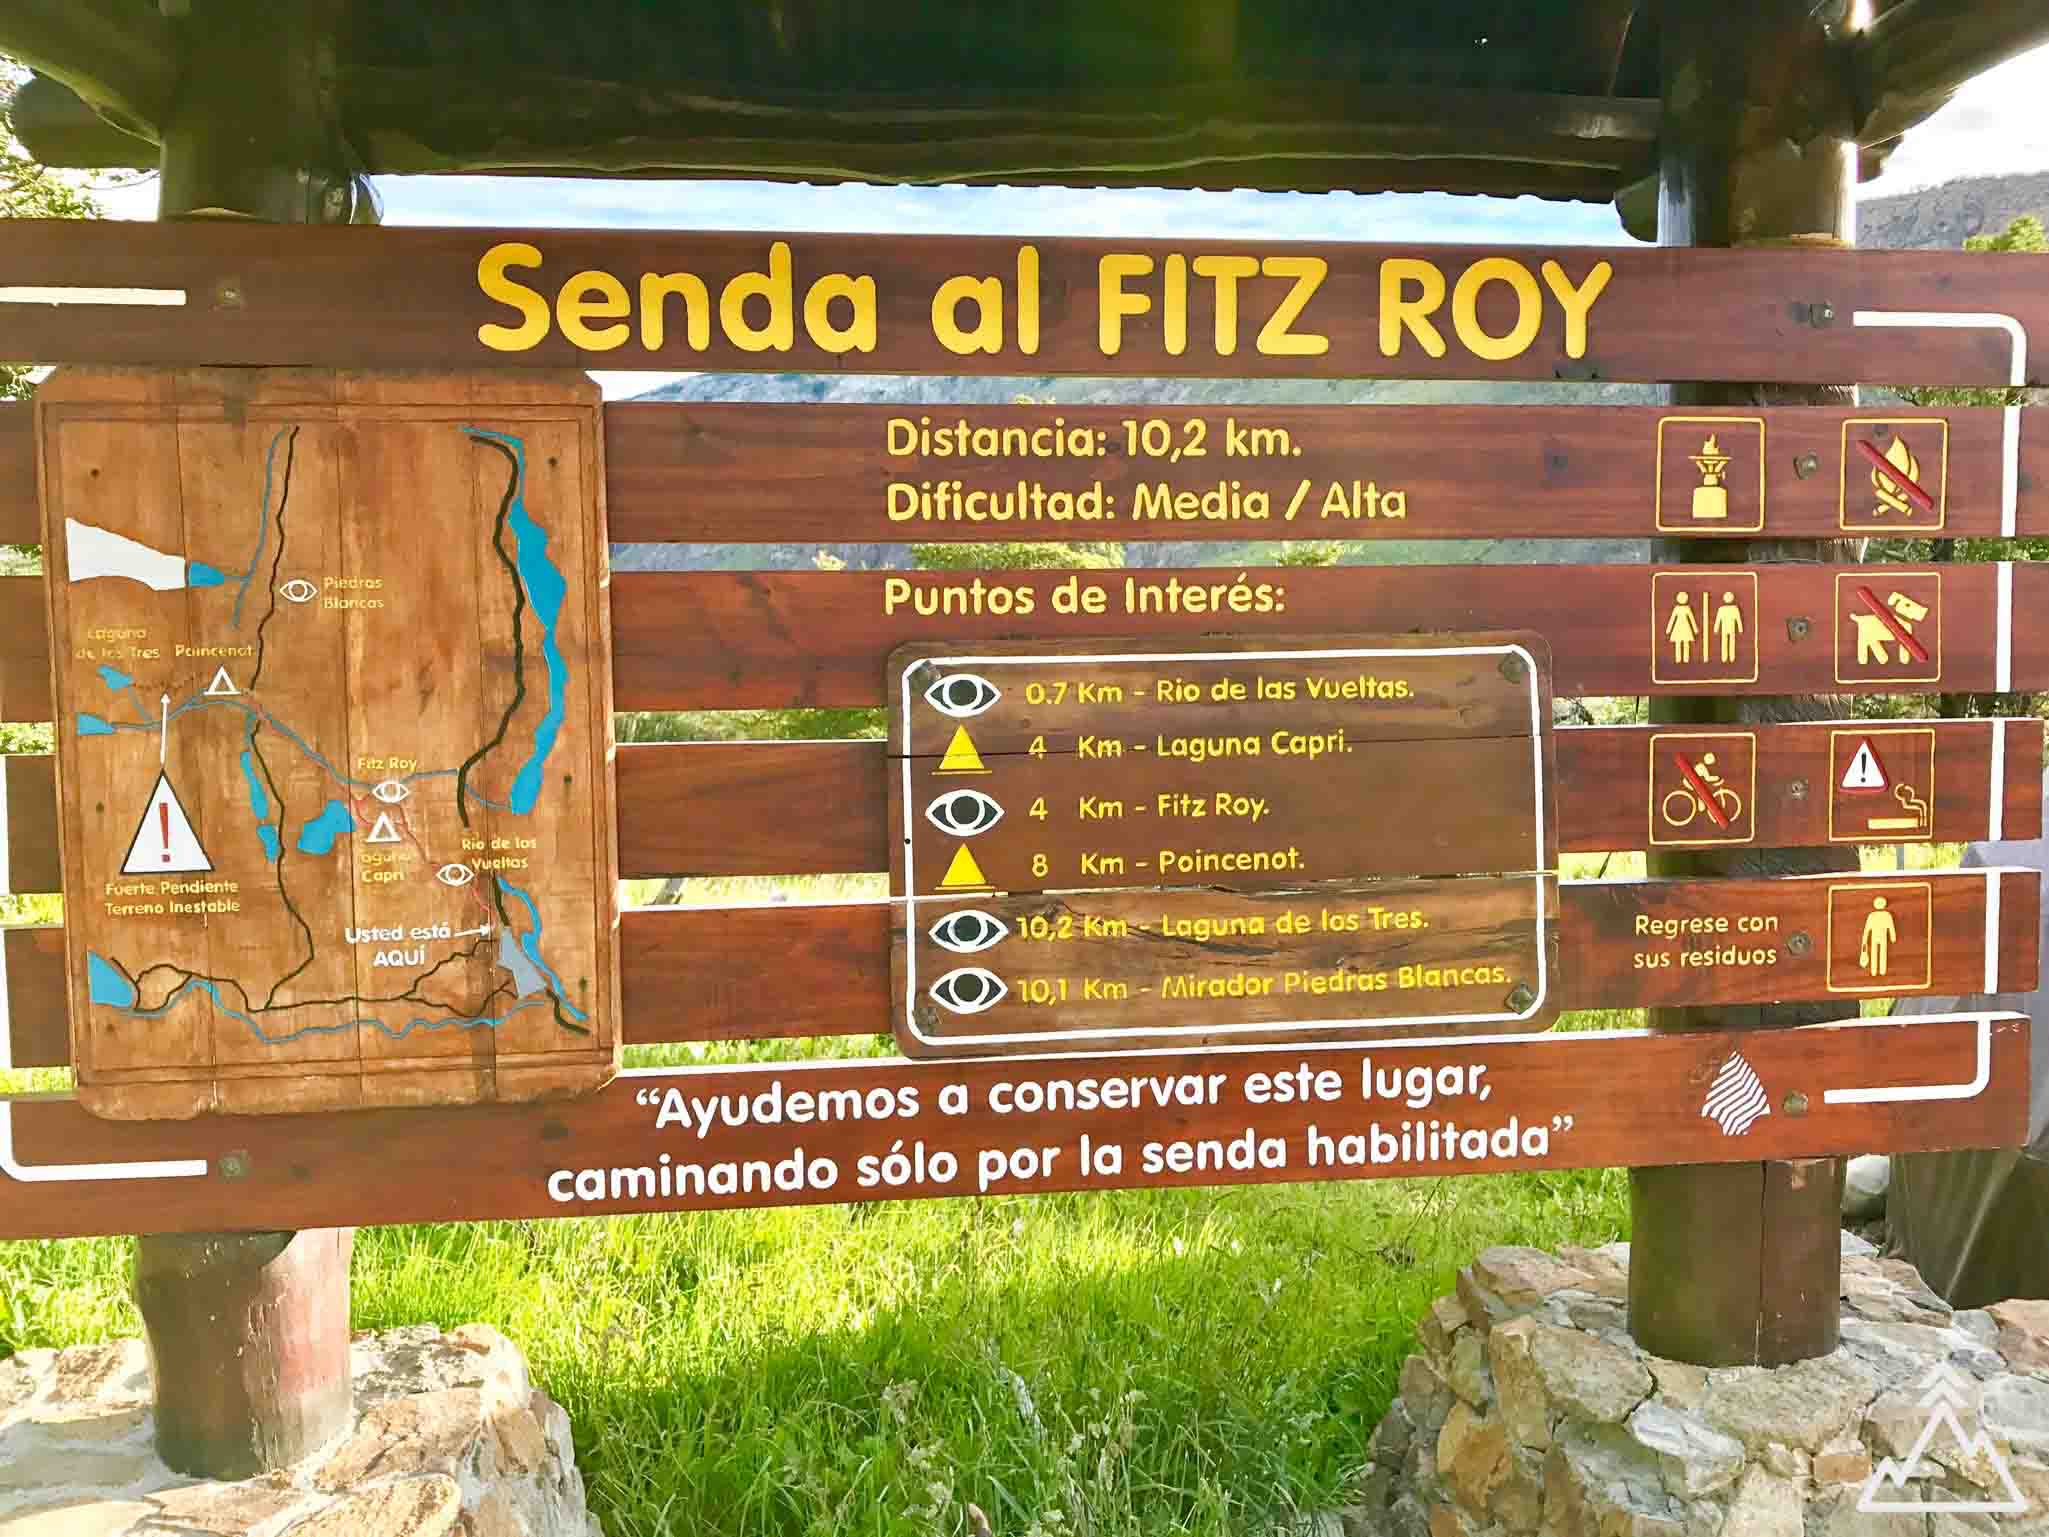 Fitz Roy Hike starting point